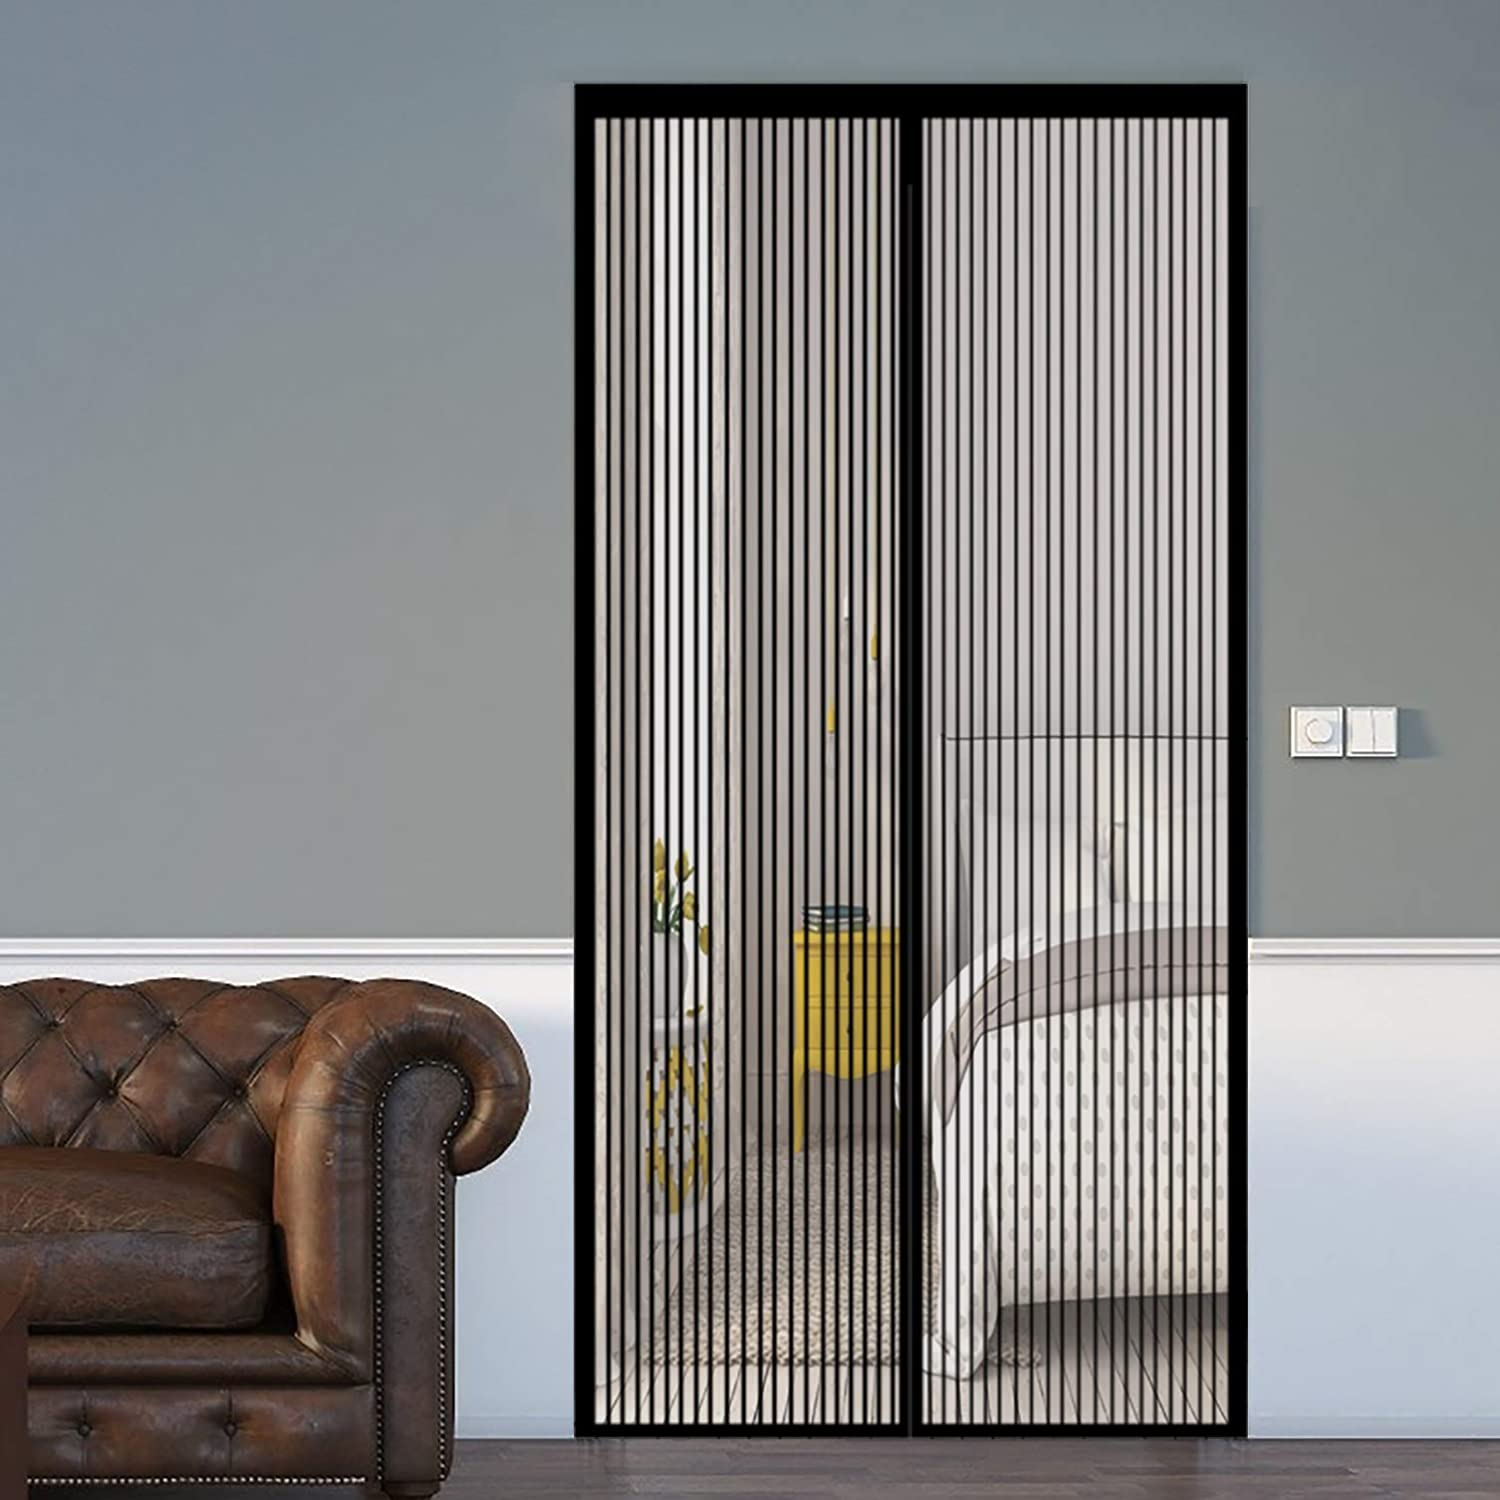 COUEO Magnetic Screen Door 120x205cm Keeps Fres Gifts Heavy Duty with Purchase